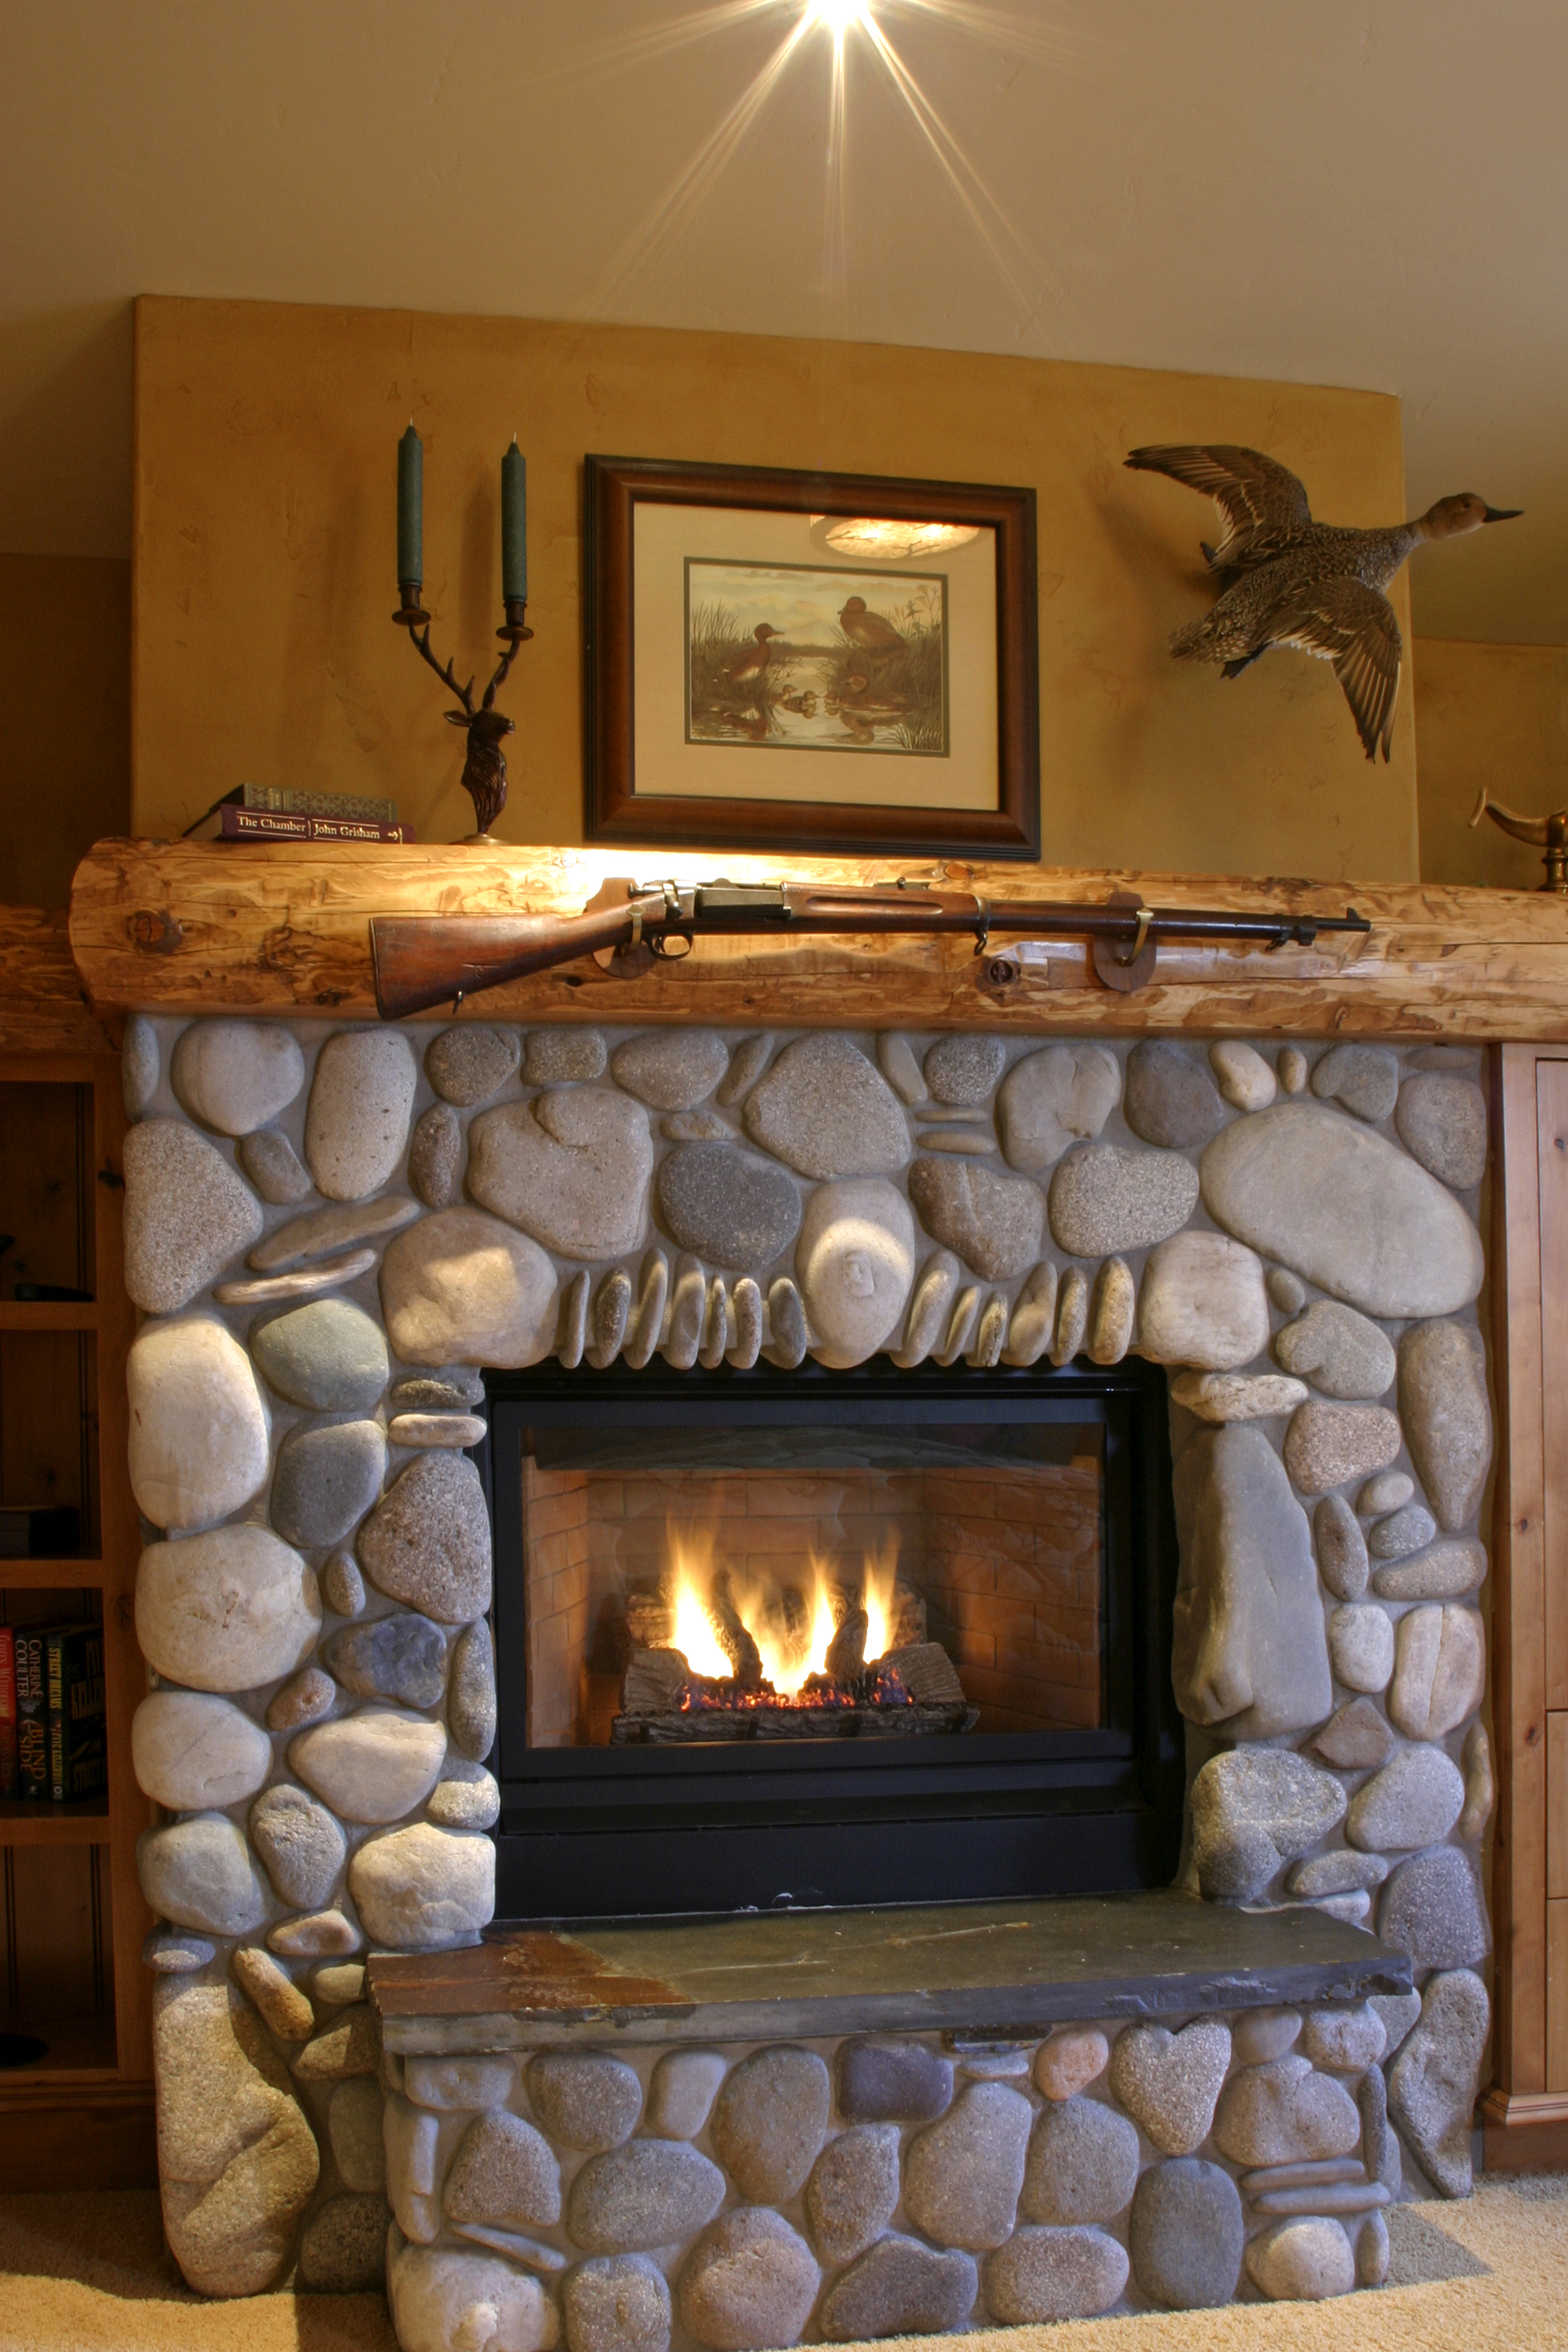 duck_bedroom_fireplace.jpg